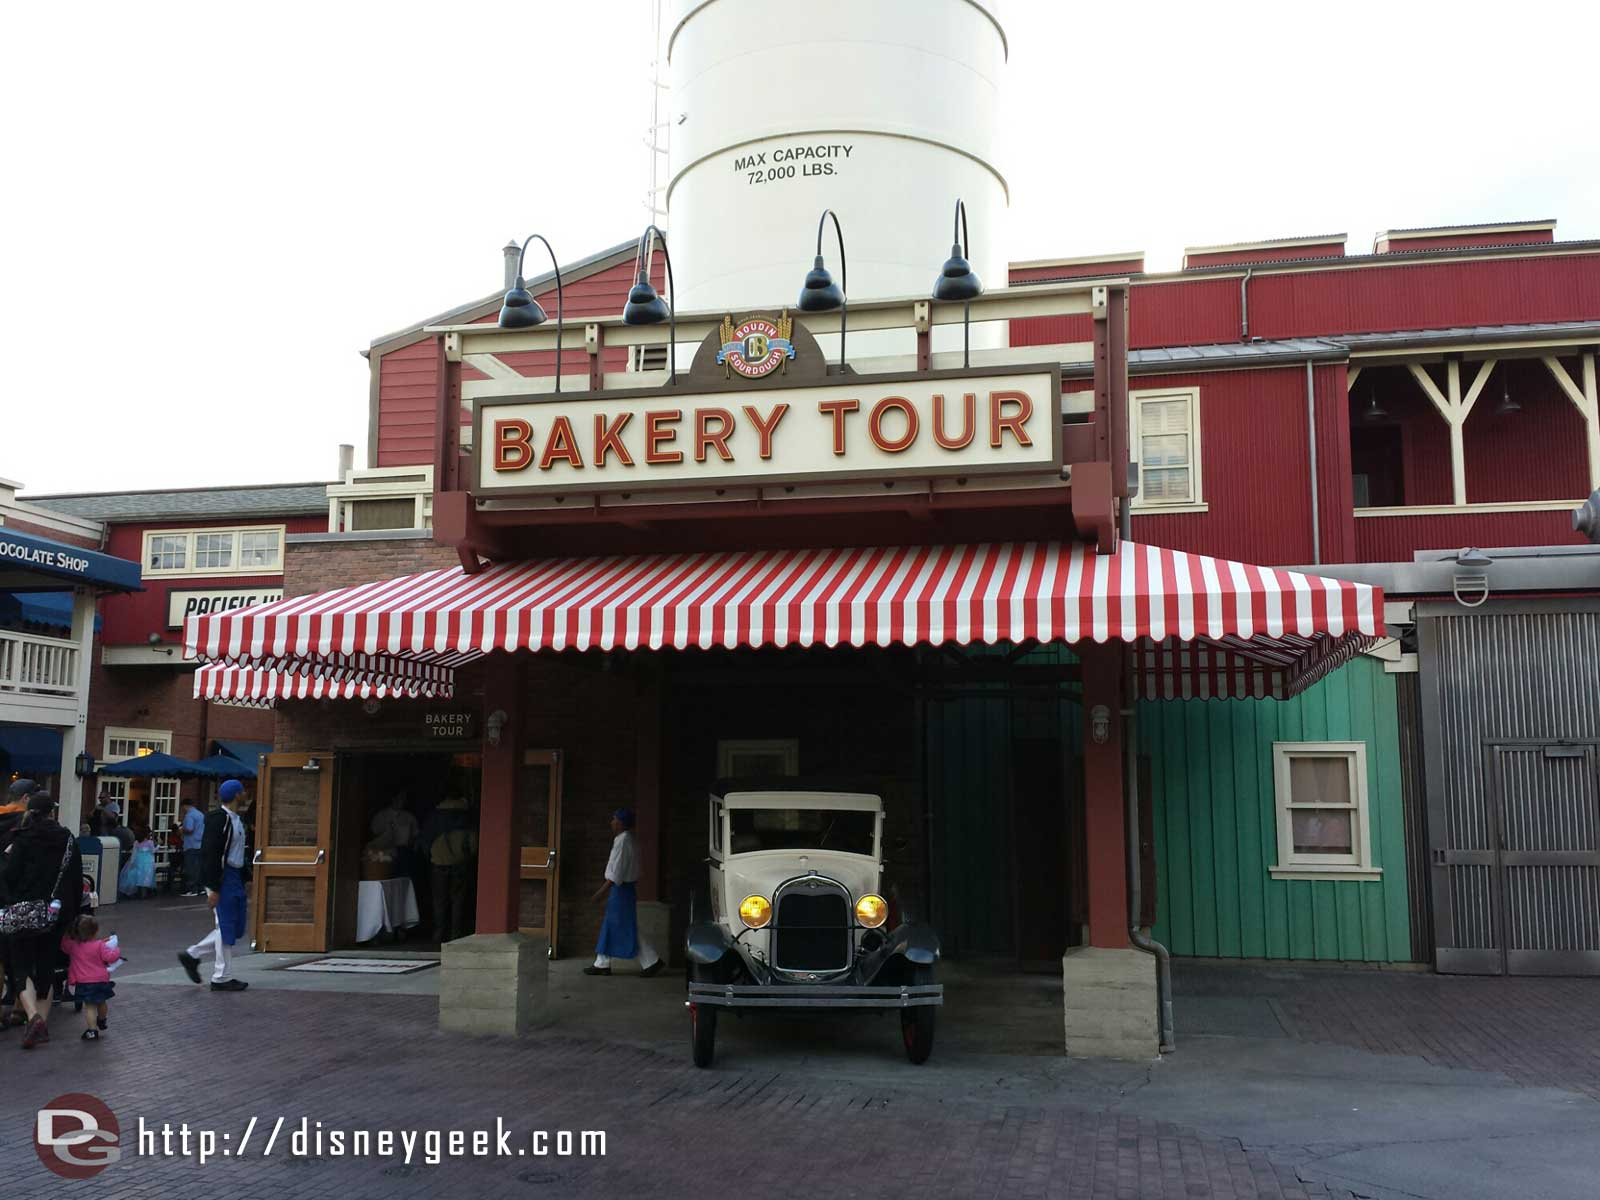 The Bakery tour has reopened at Disney California Adventure